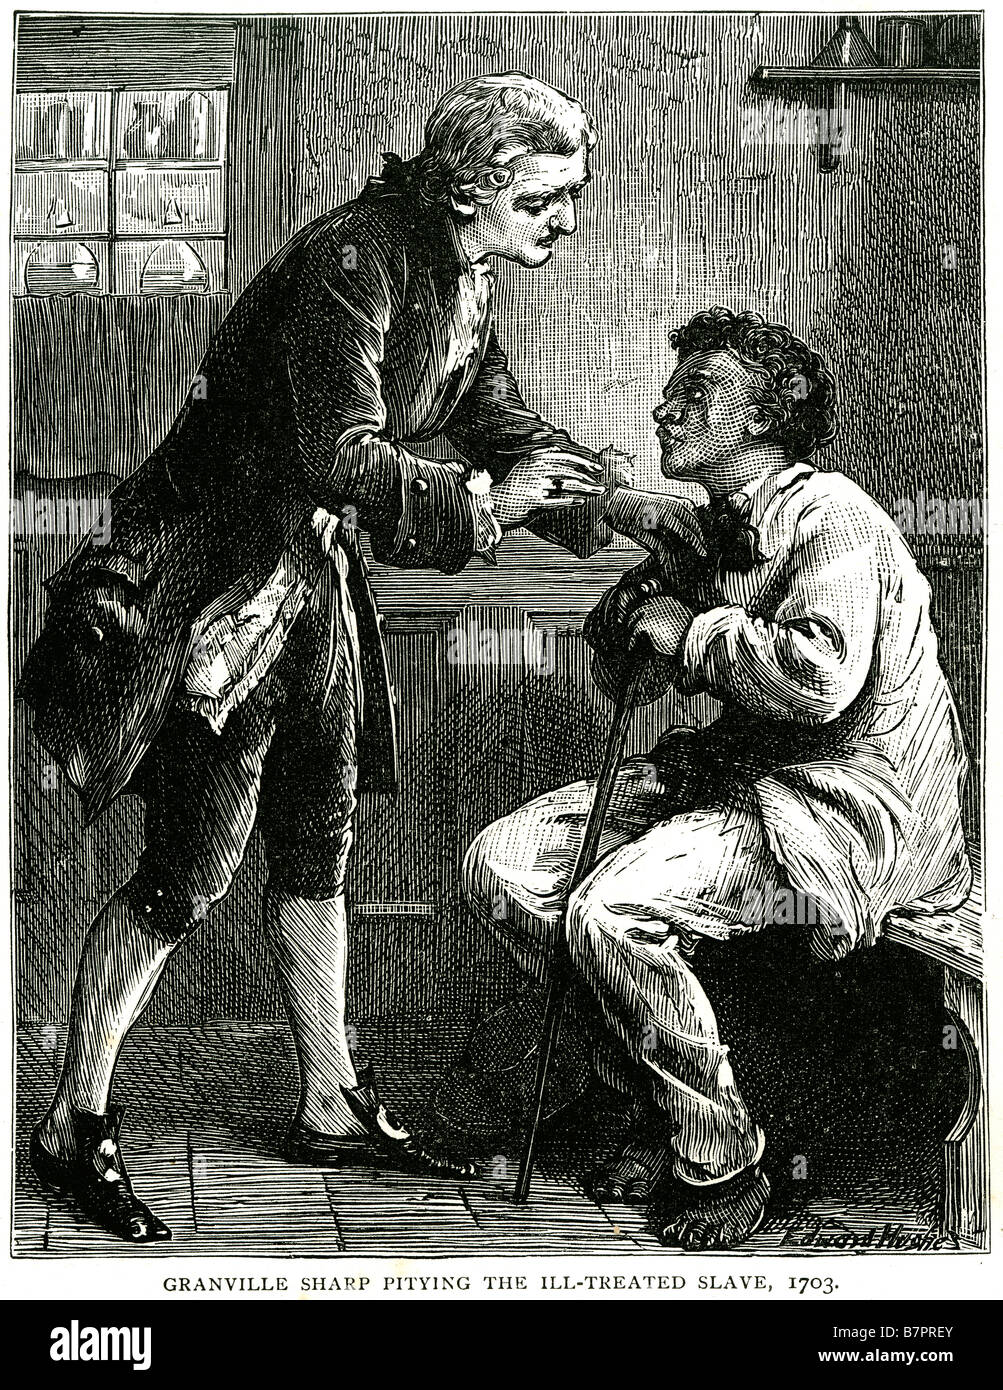 Granville Sharp Pitying Ill-Treated slave 1703 slavery sorry pity inside house walking stick Granville Sharp (10 - Stock Image